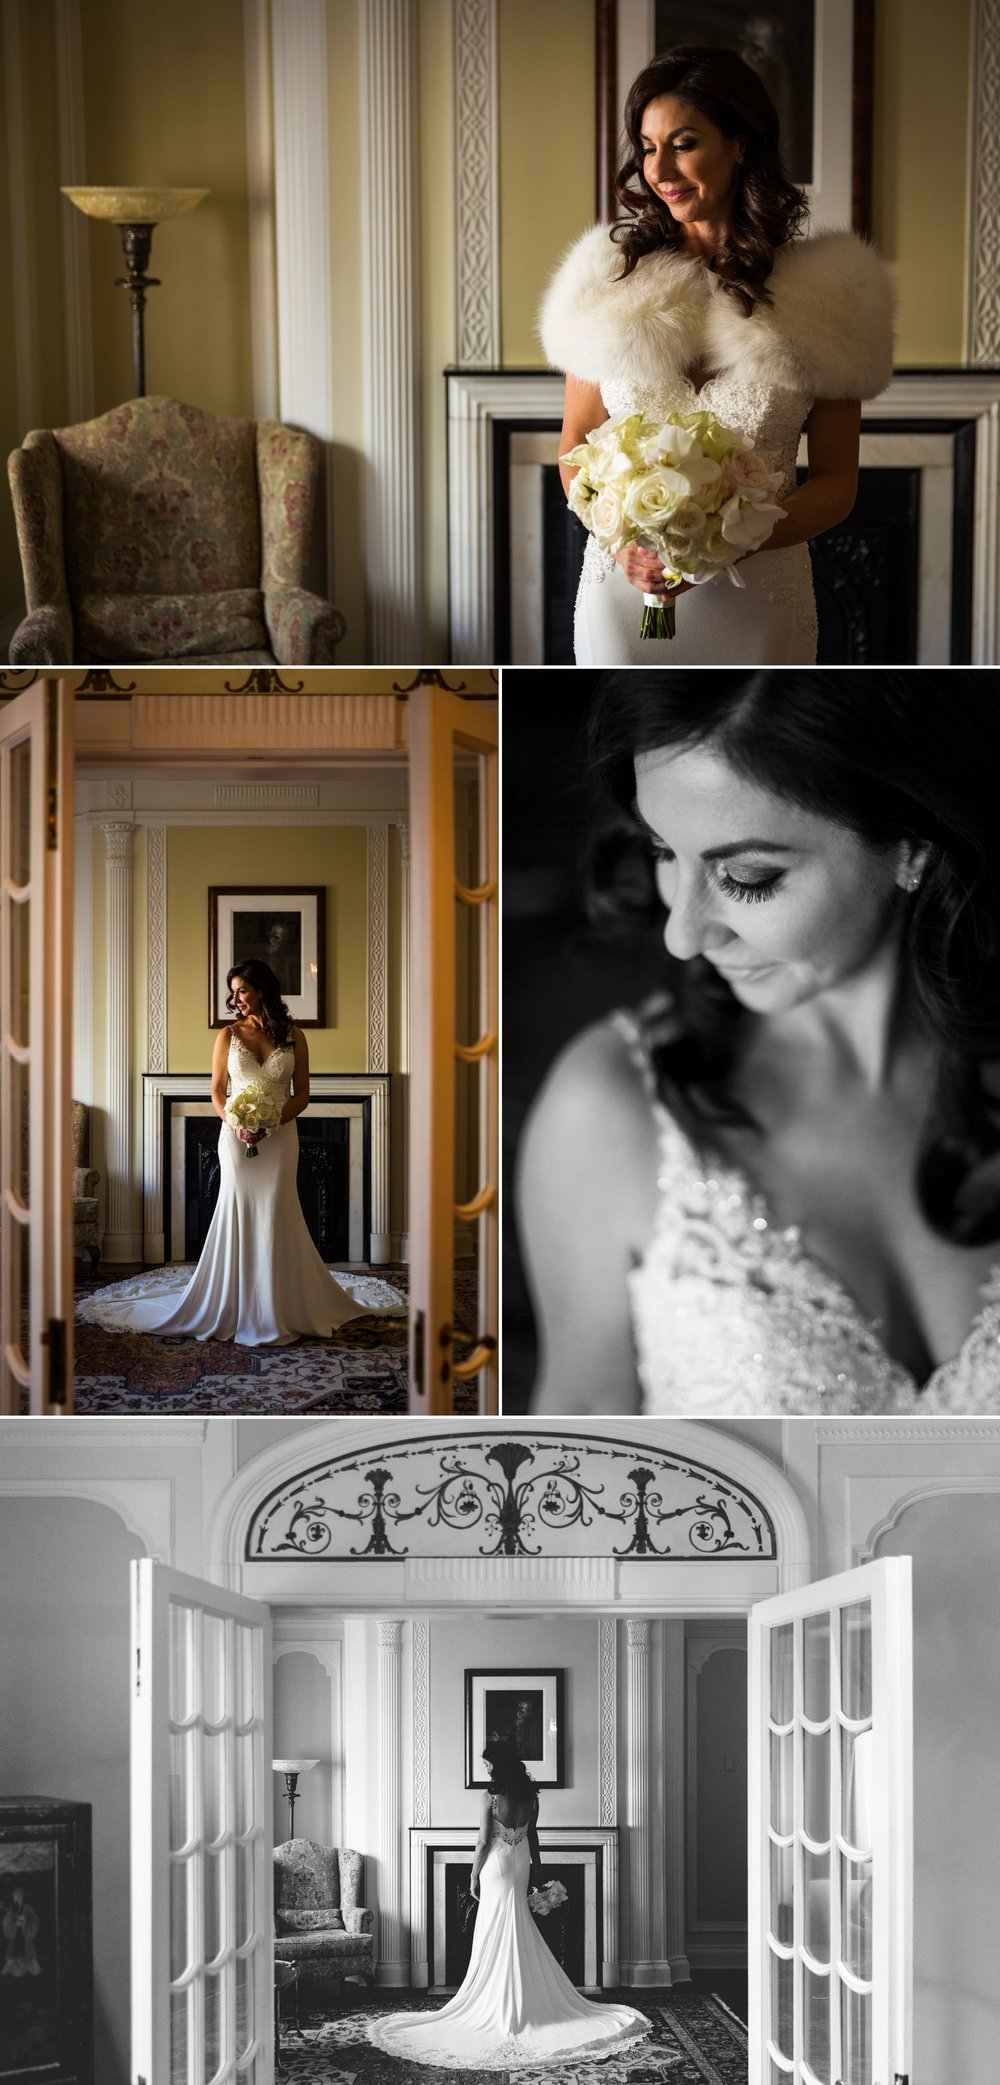 Bridal portrait at le chateau laurier in Ottawa